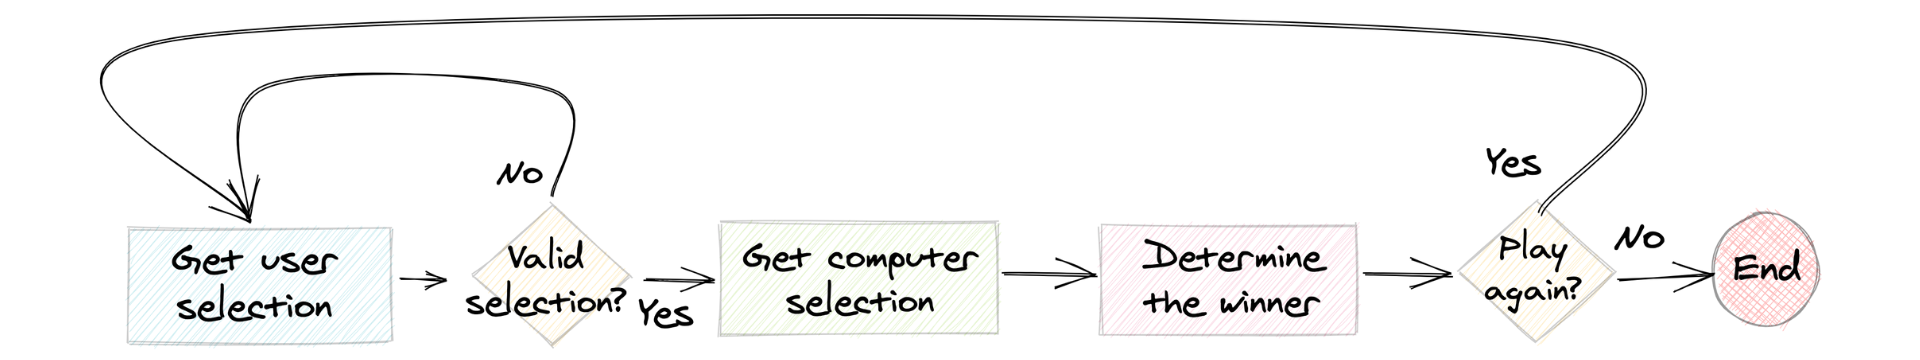 A flow chart for playing rock paper scissors that includes a check for whether or not the user's input is valid.